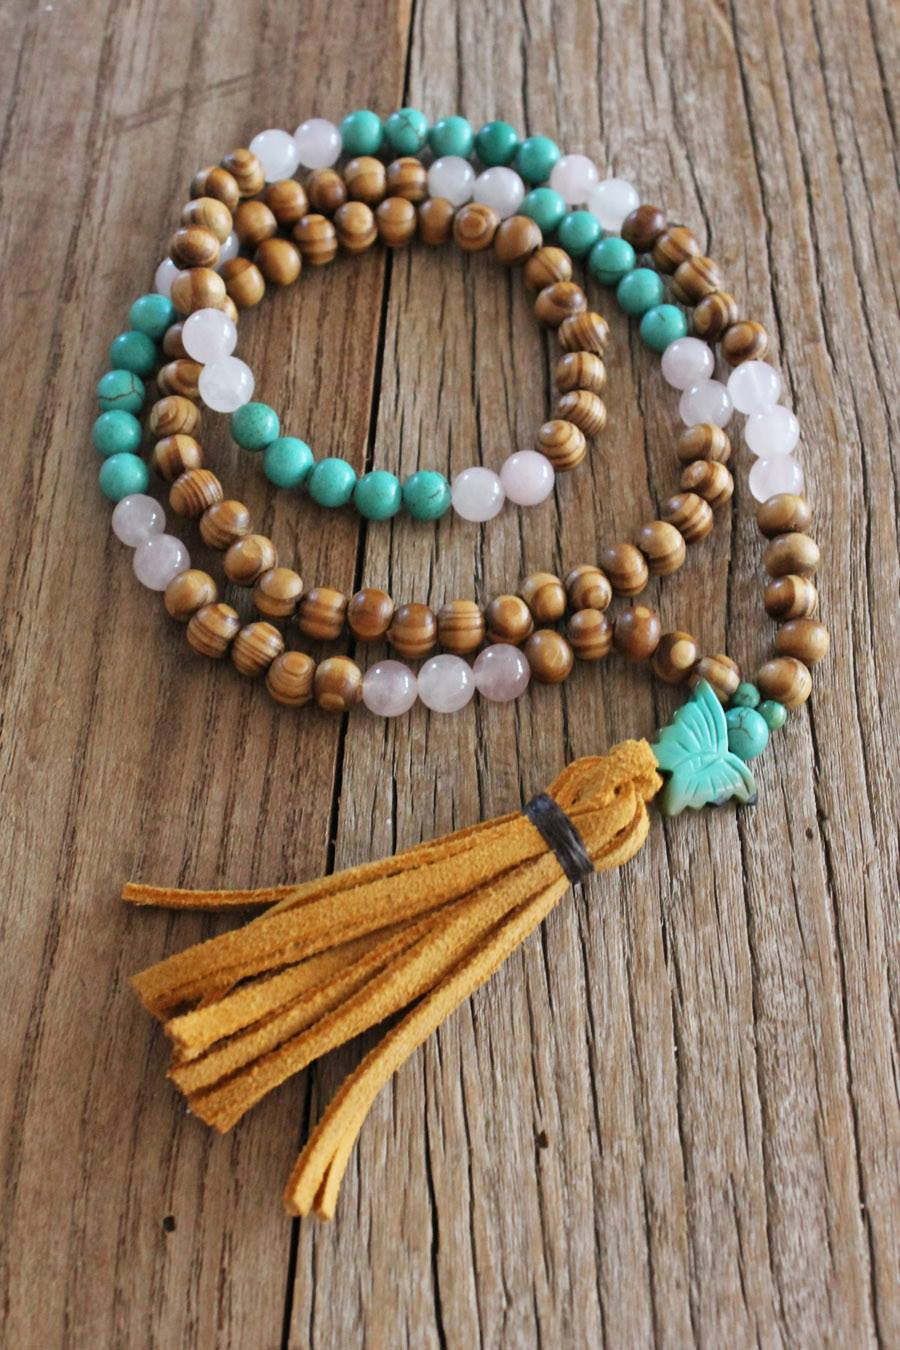 Tibetan Wood, Rose Quartz, Turquoise Howlite, Turquoise Butterfly charm and pumpkin suede tassel